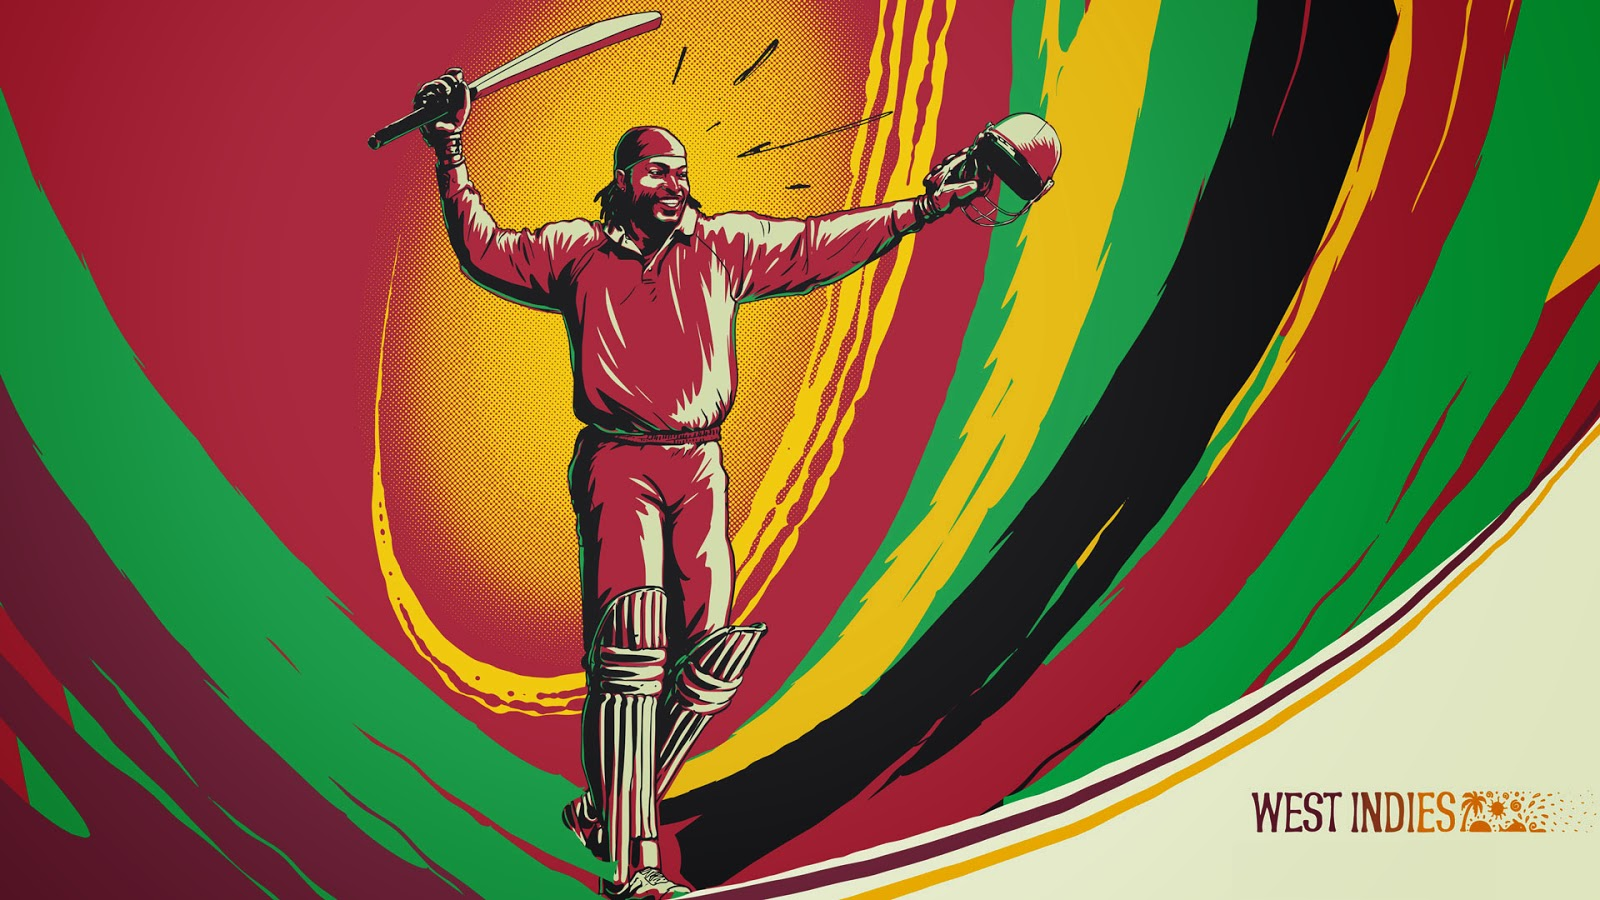 Chris Gayle West Indies Cricket Illustration Sketch